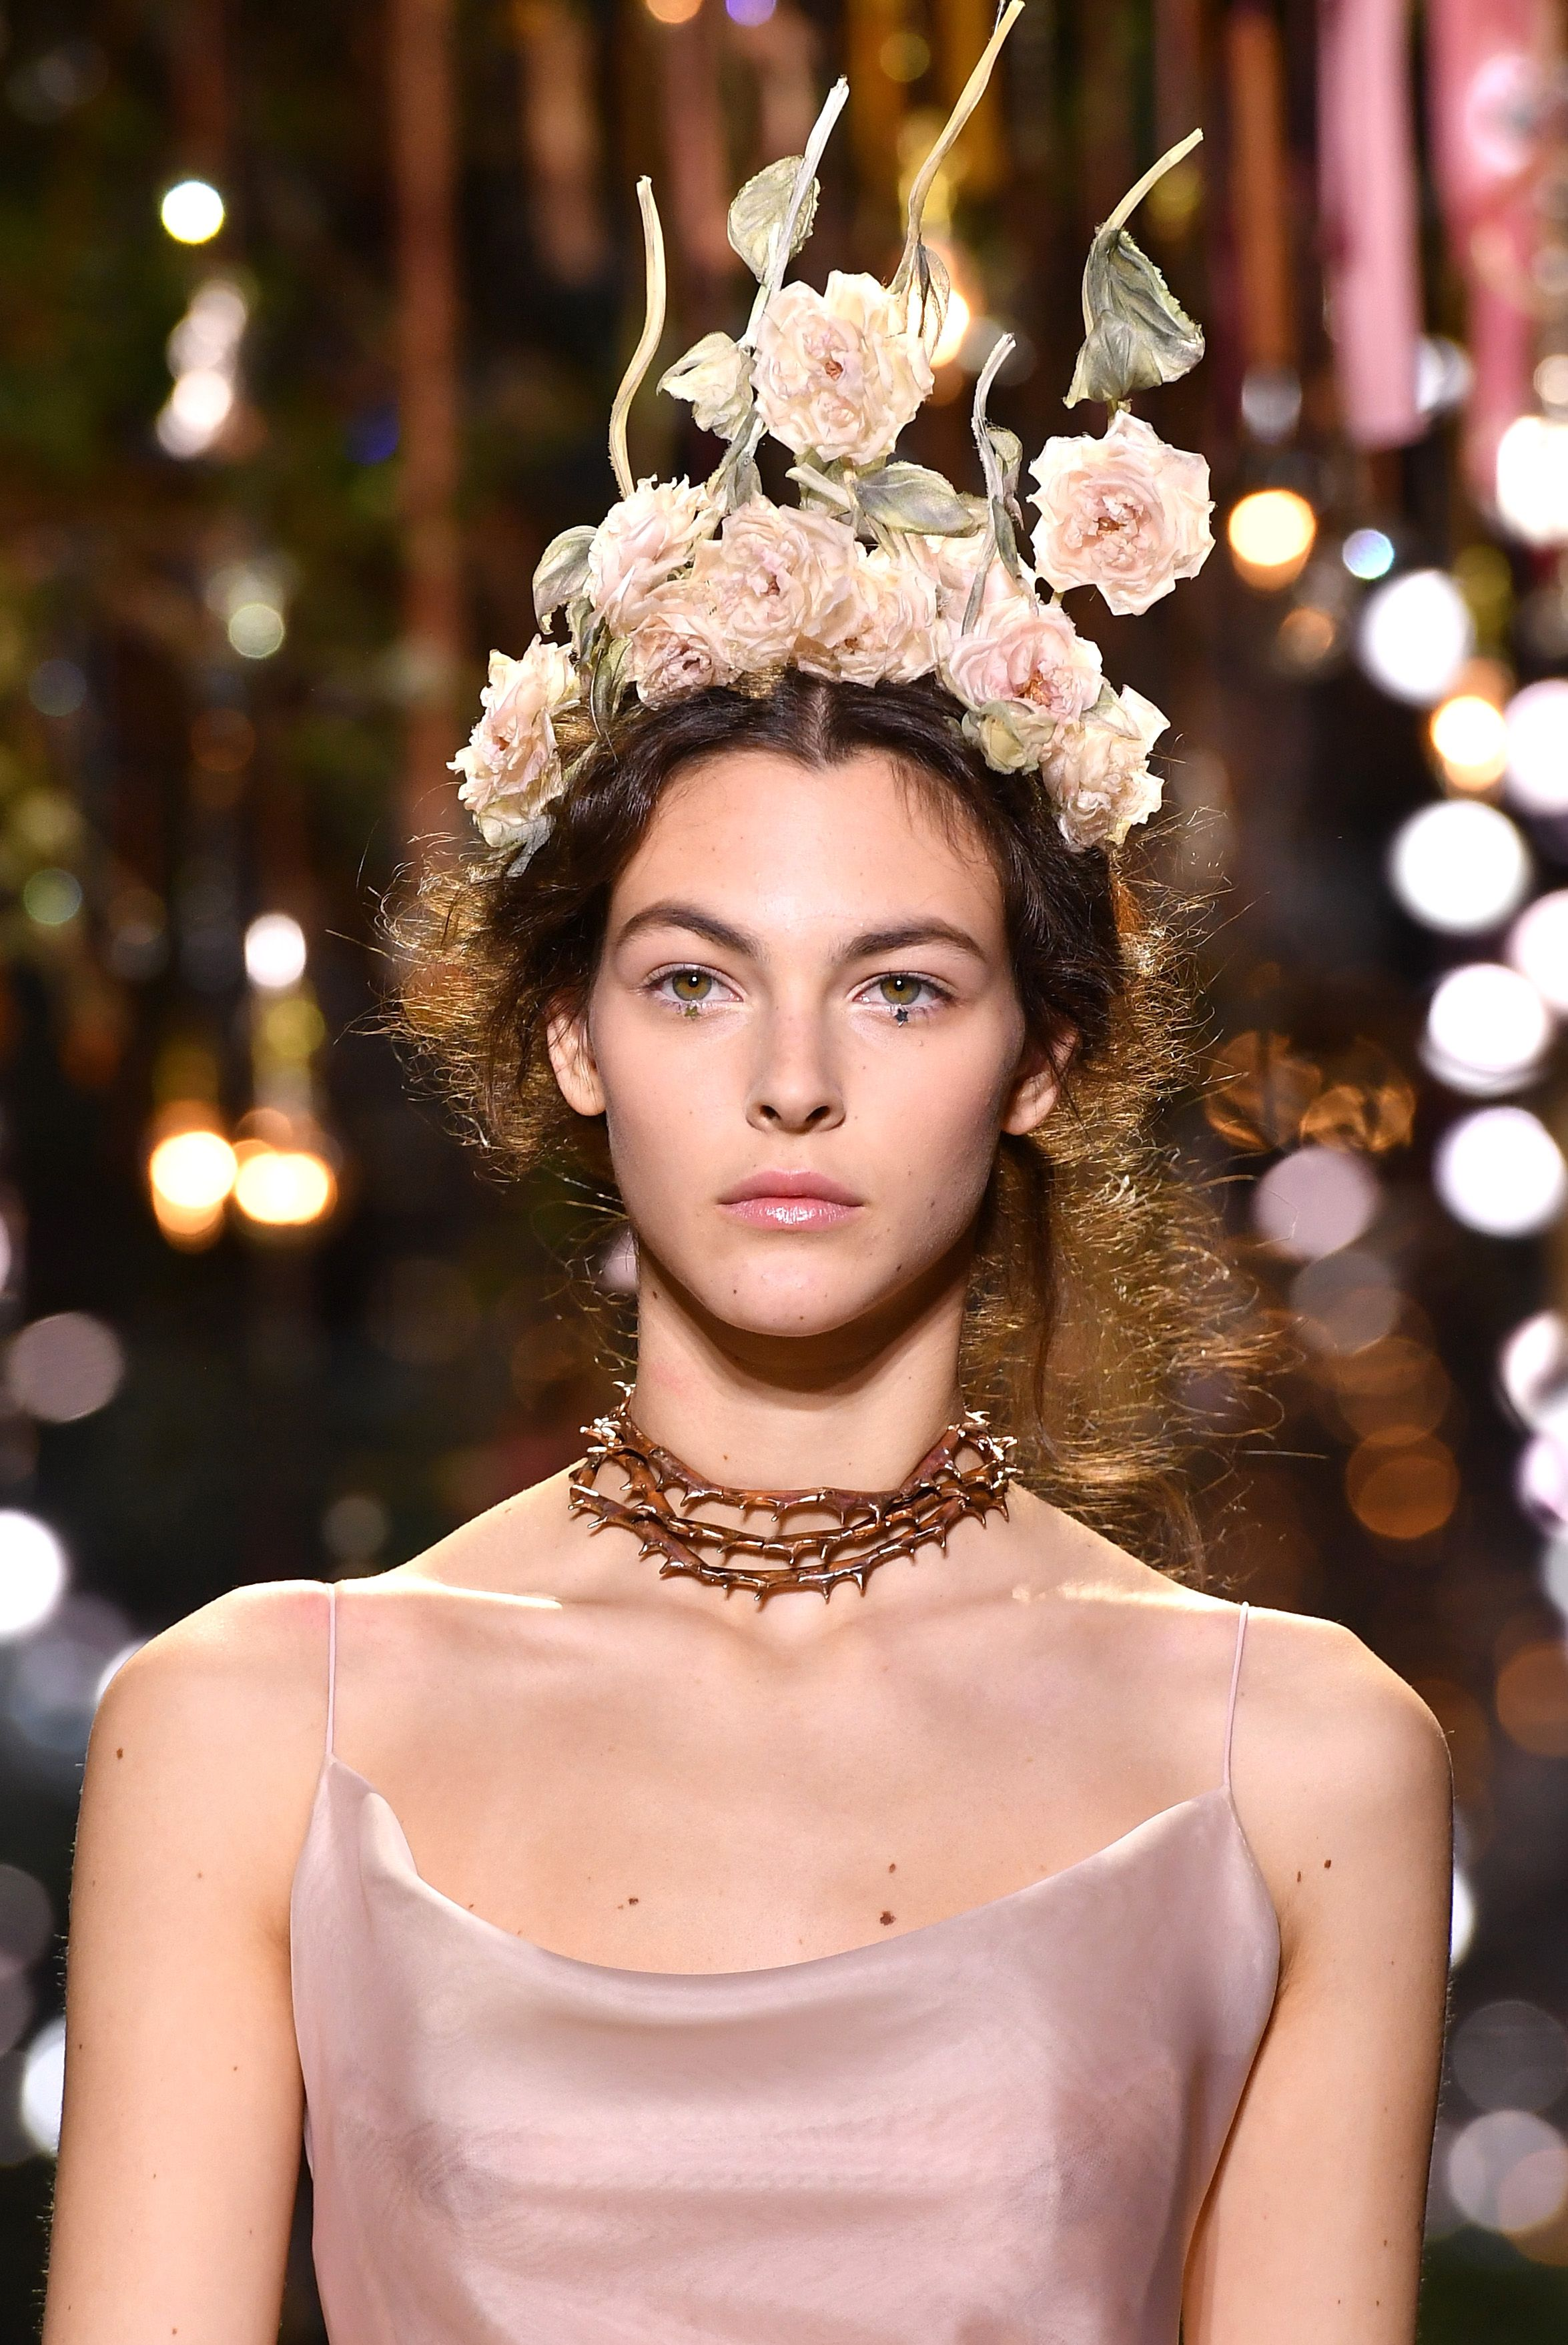 Dior couture hairstyles for spring and summer 2017 flower crowns dior couture hairstyles for spring and summer 2017 flower crowns at dior runway izmirmasajfo